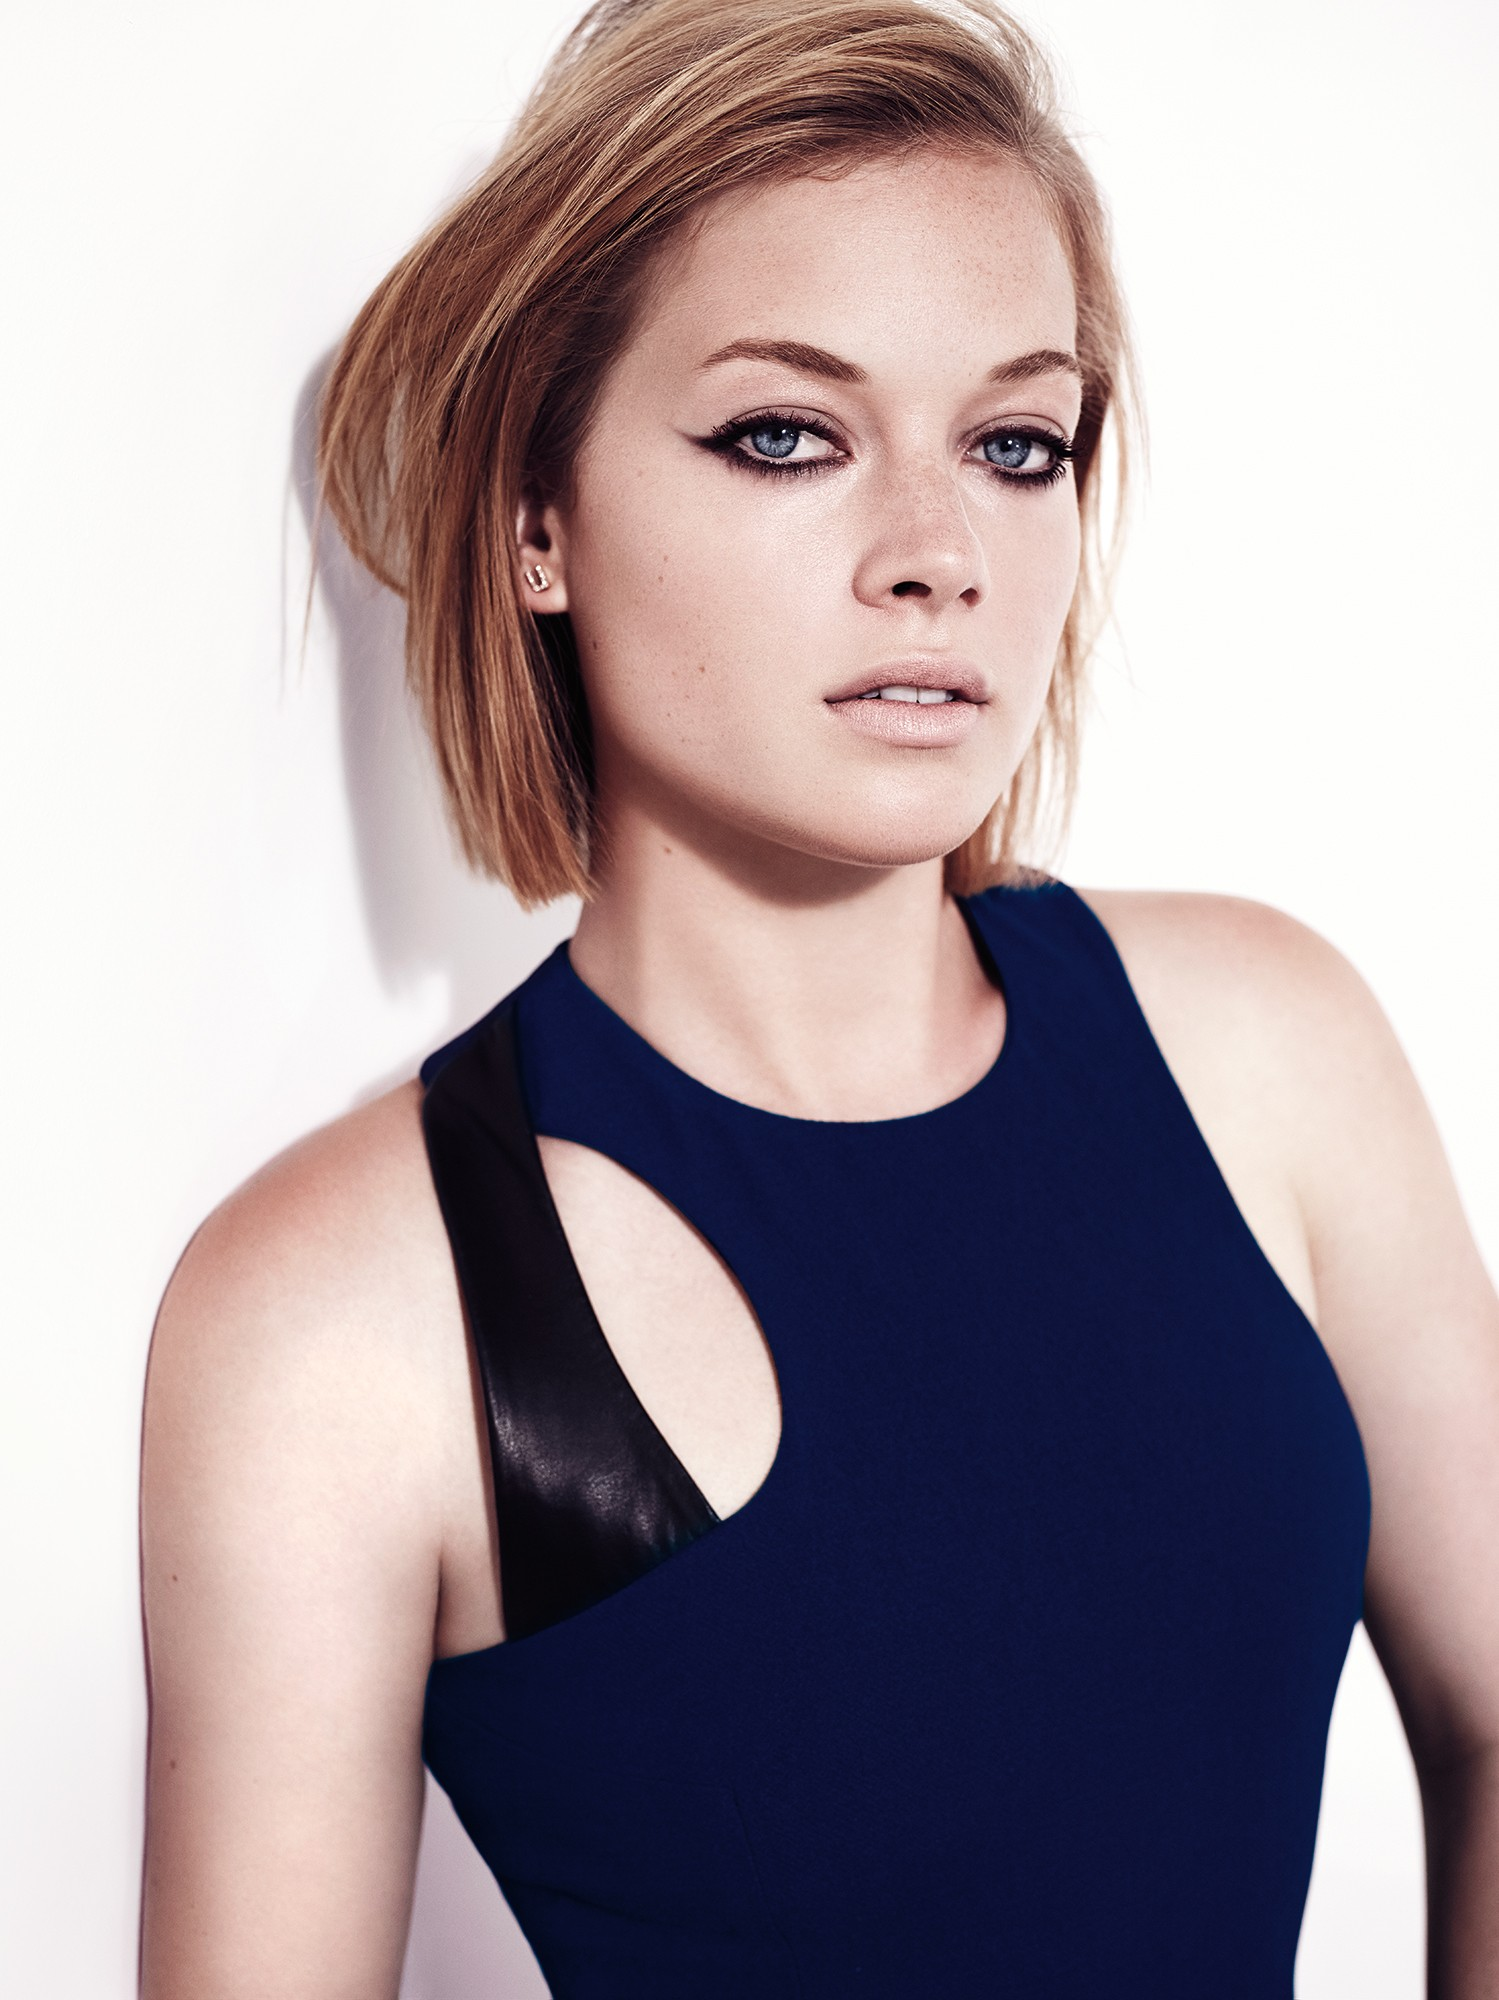 Jane Levy Sexy Pictures, Great Body and Cleavage